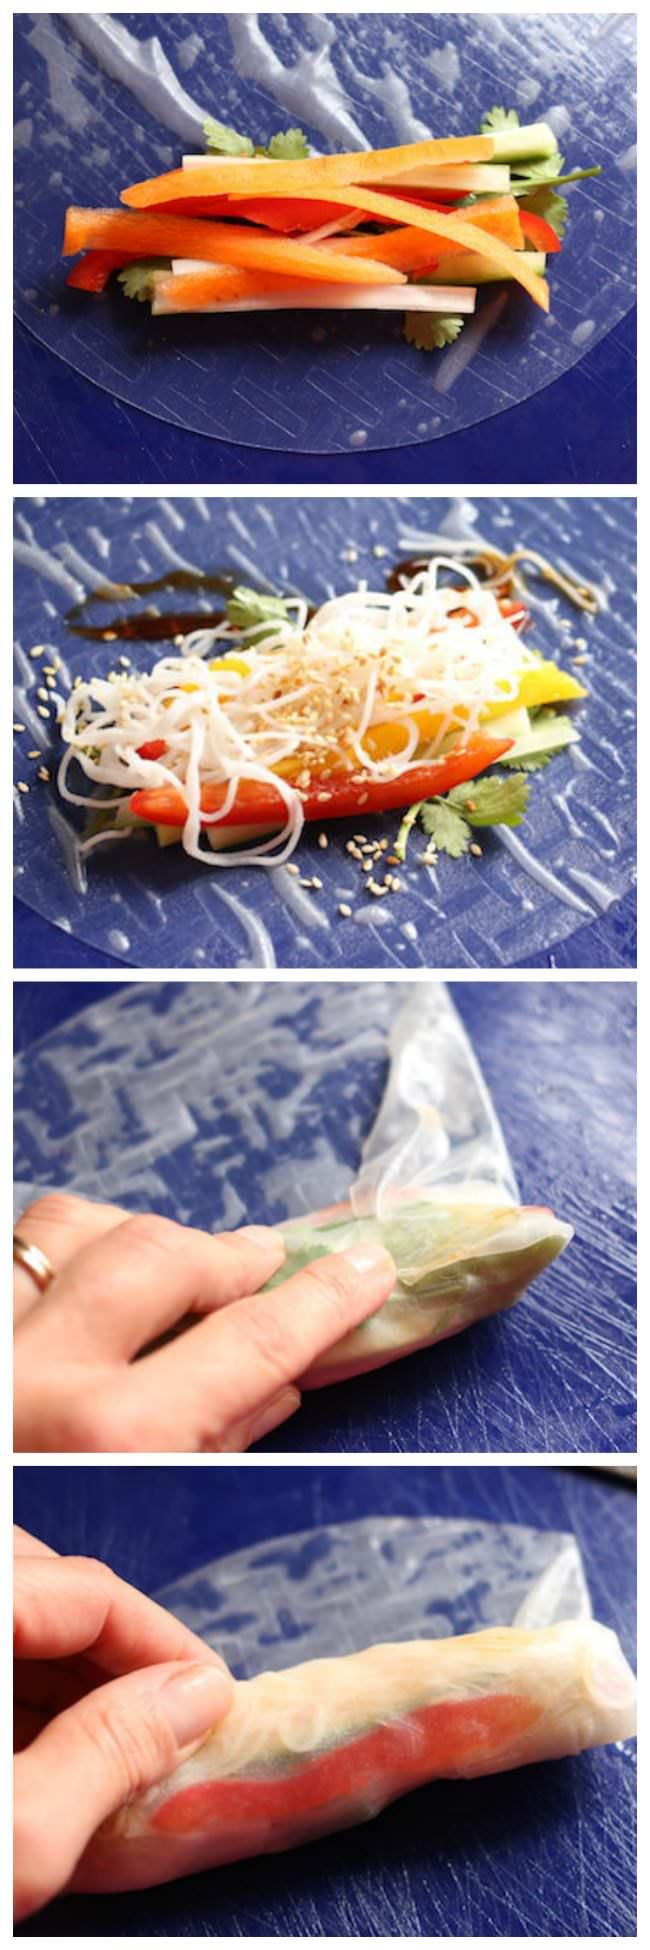 How to Make Healthy Vietnamese Spring Rolls at Home:  they're easy, nutritious and SO delicious!  Get the simple step-by-step! - Happy Hooligans  via @https://www.pinterest.com/happyhooligans/